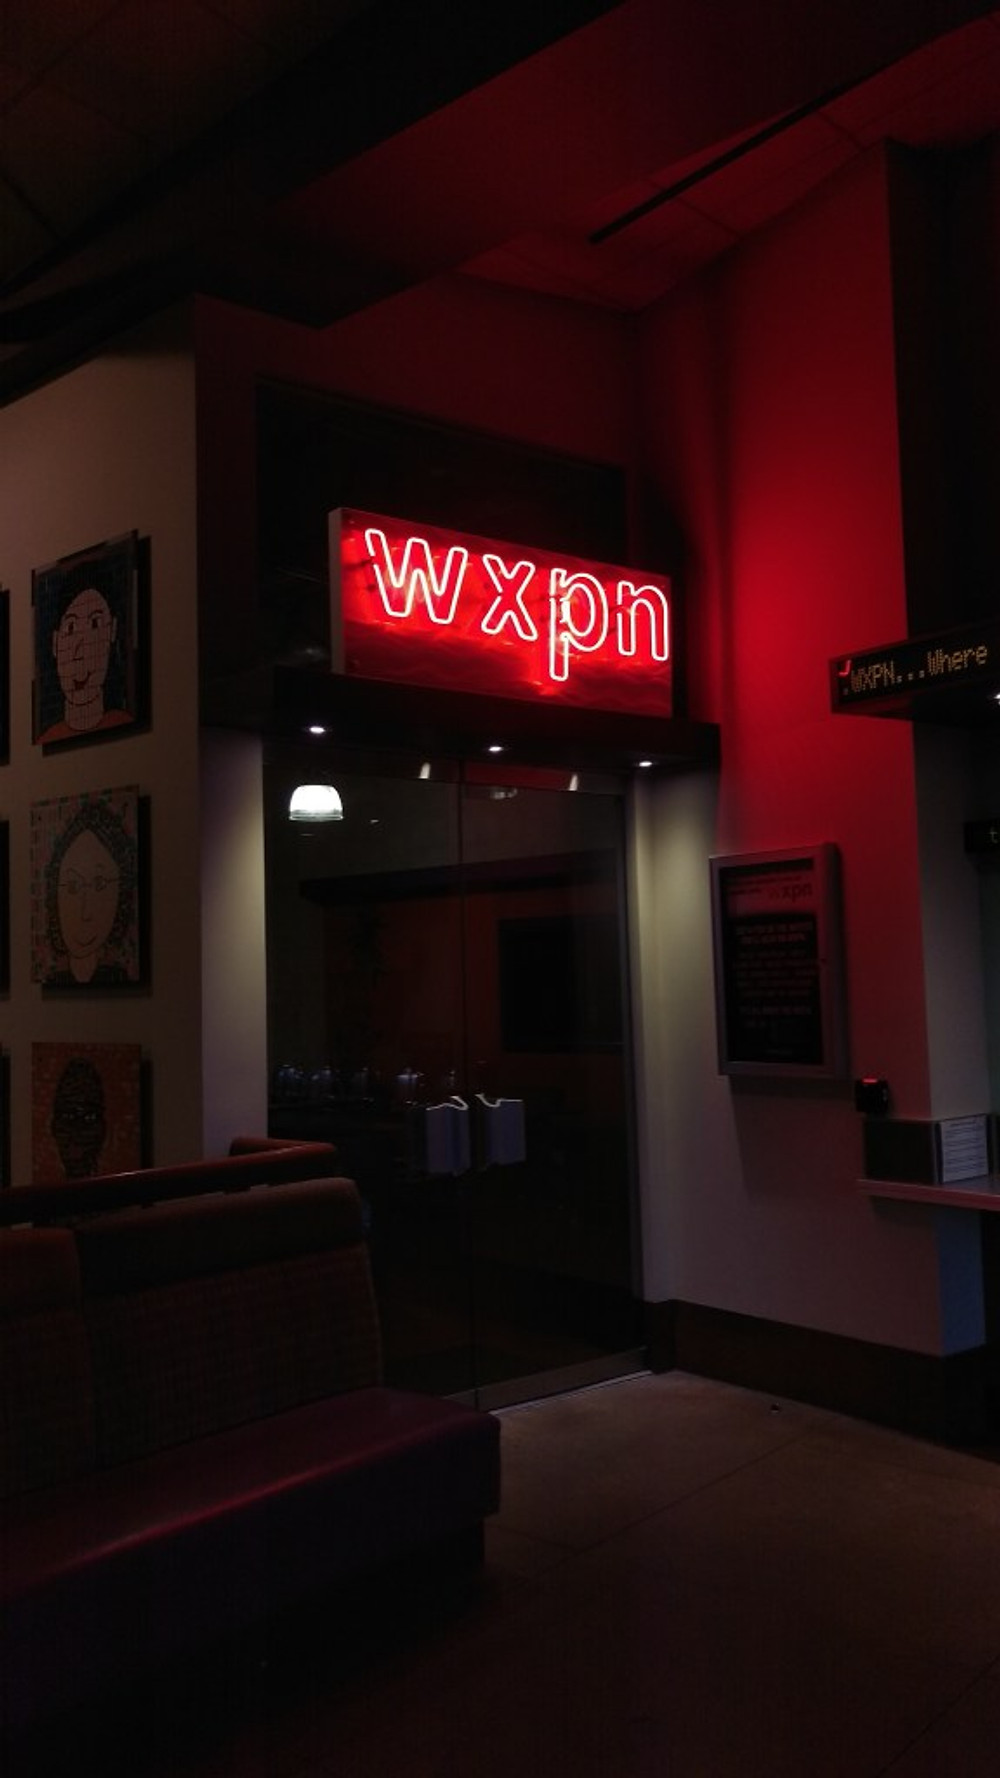 A picture of the entry to the WXPN radio studio.